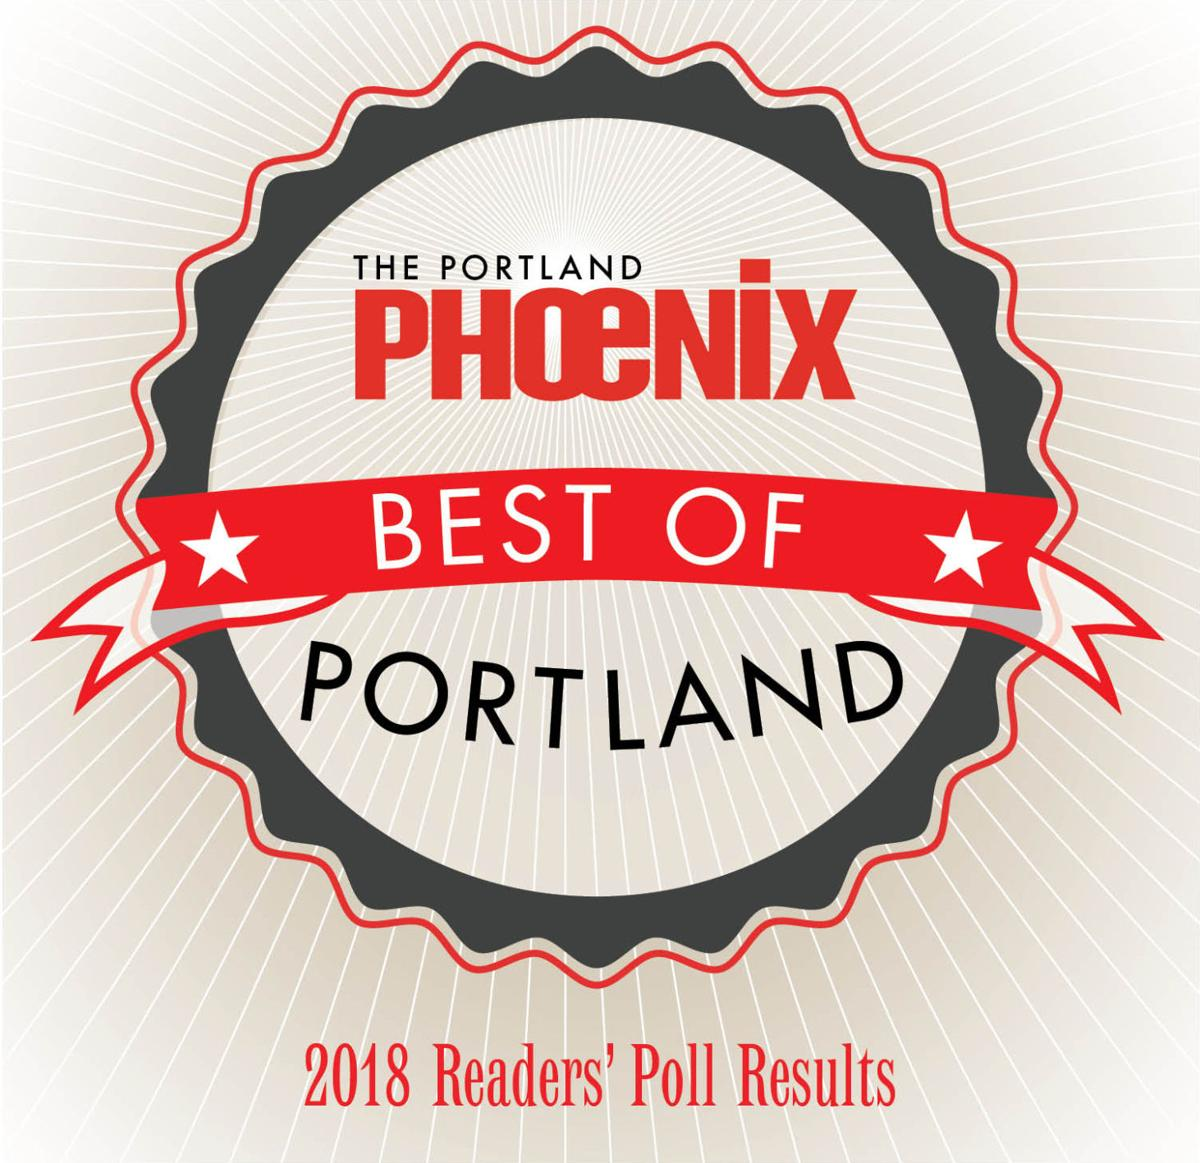 portland phoenix best of portland 2018 reader's poll results